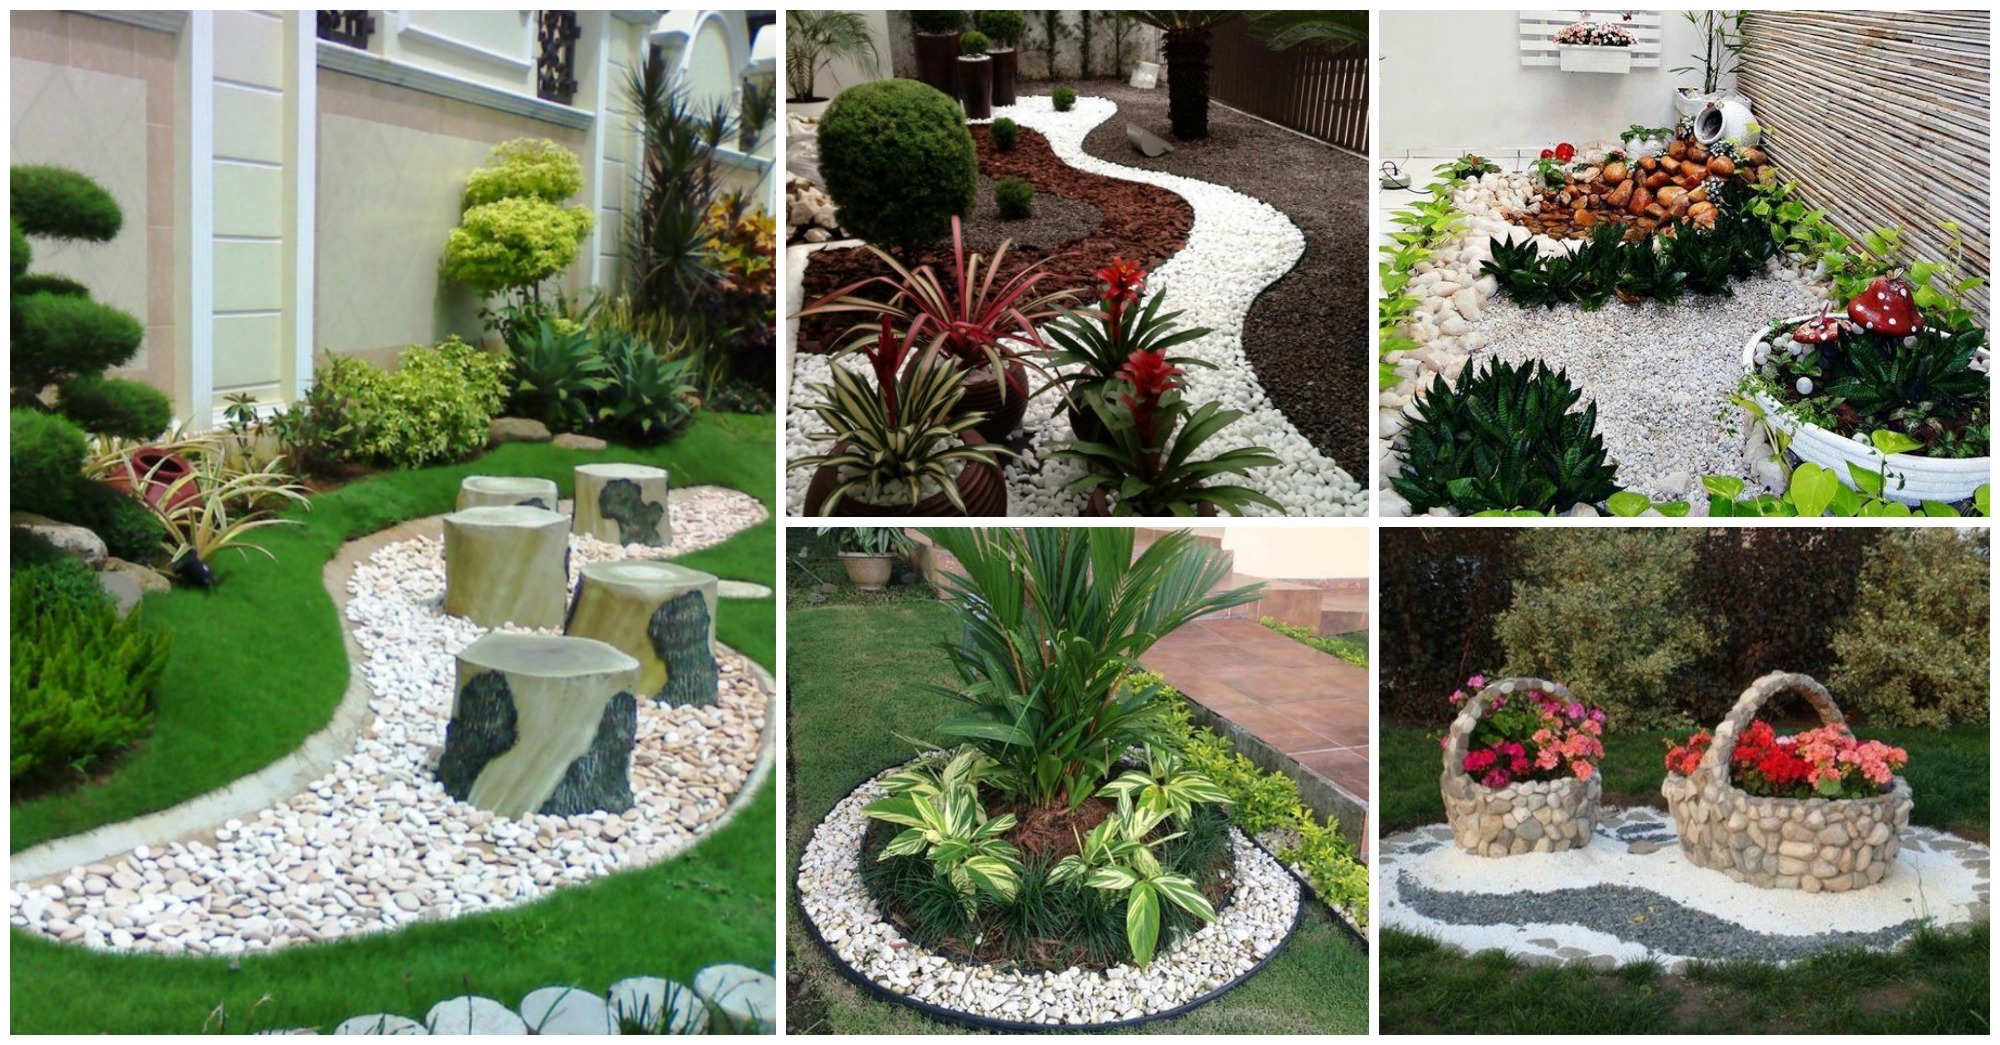 12 fant sticas ideas para dise ar un jard n con piedras for Ideas de patios y jardines